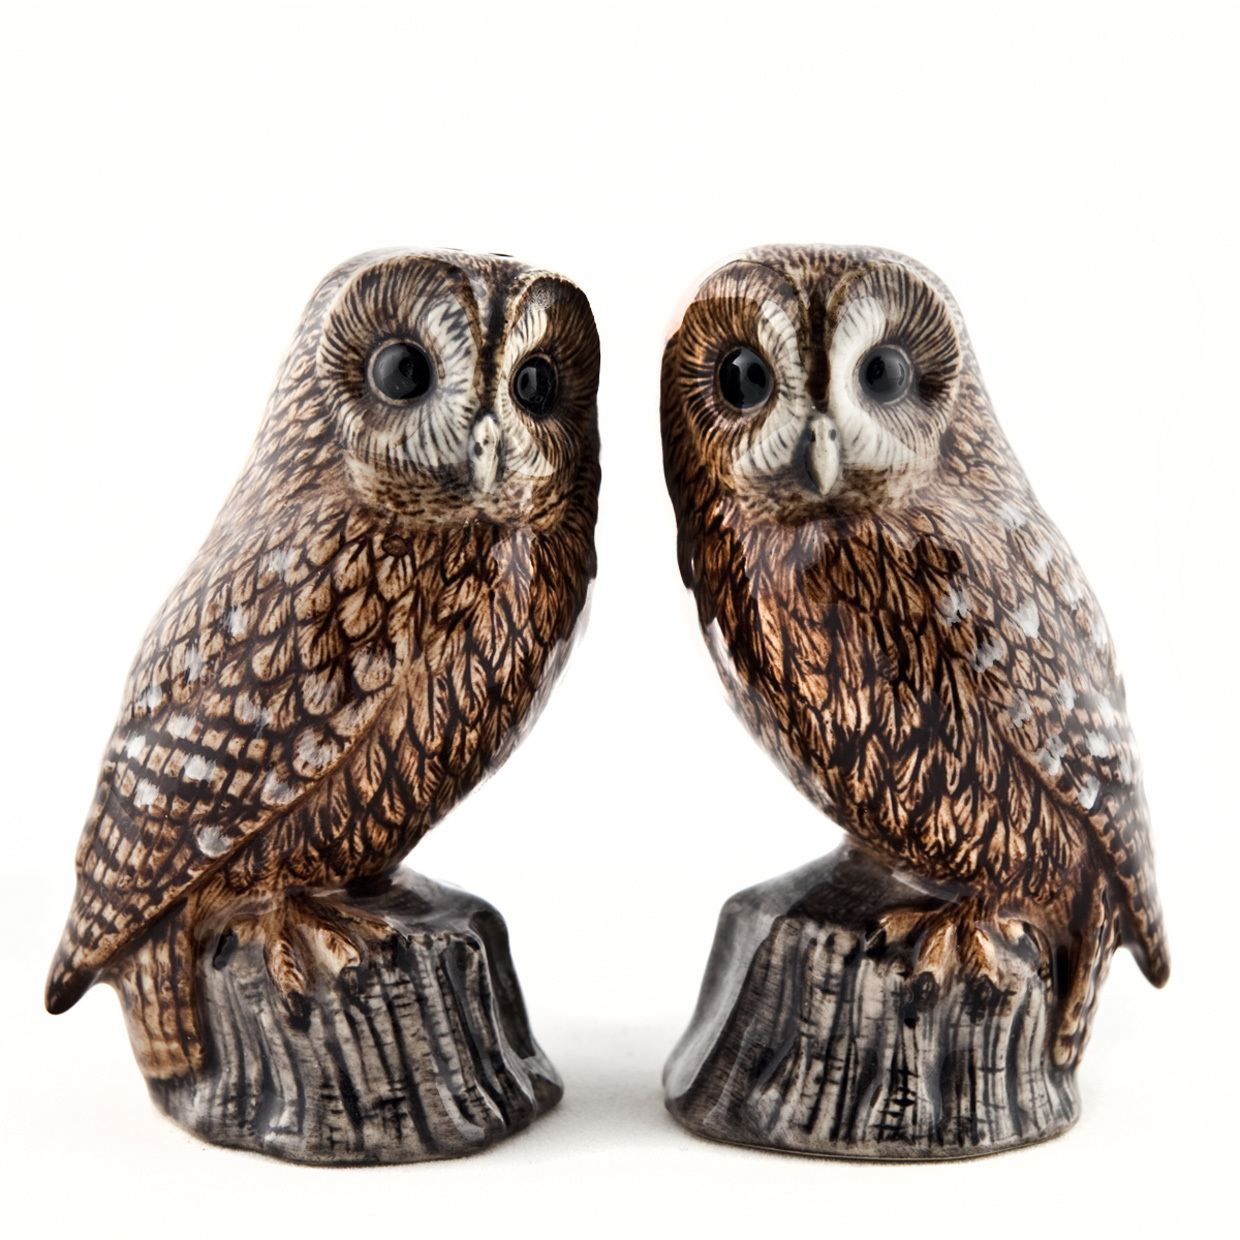 Tawny Owl Salt And Pepper Shakers by Quail Ceramics